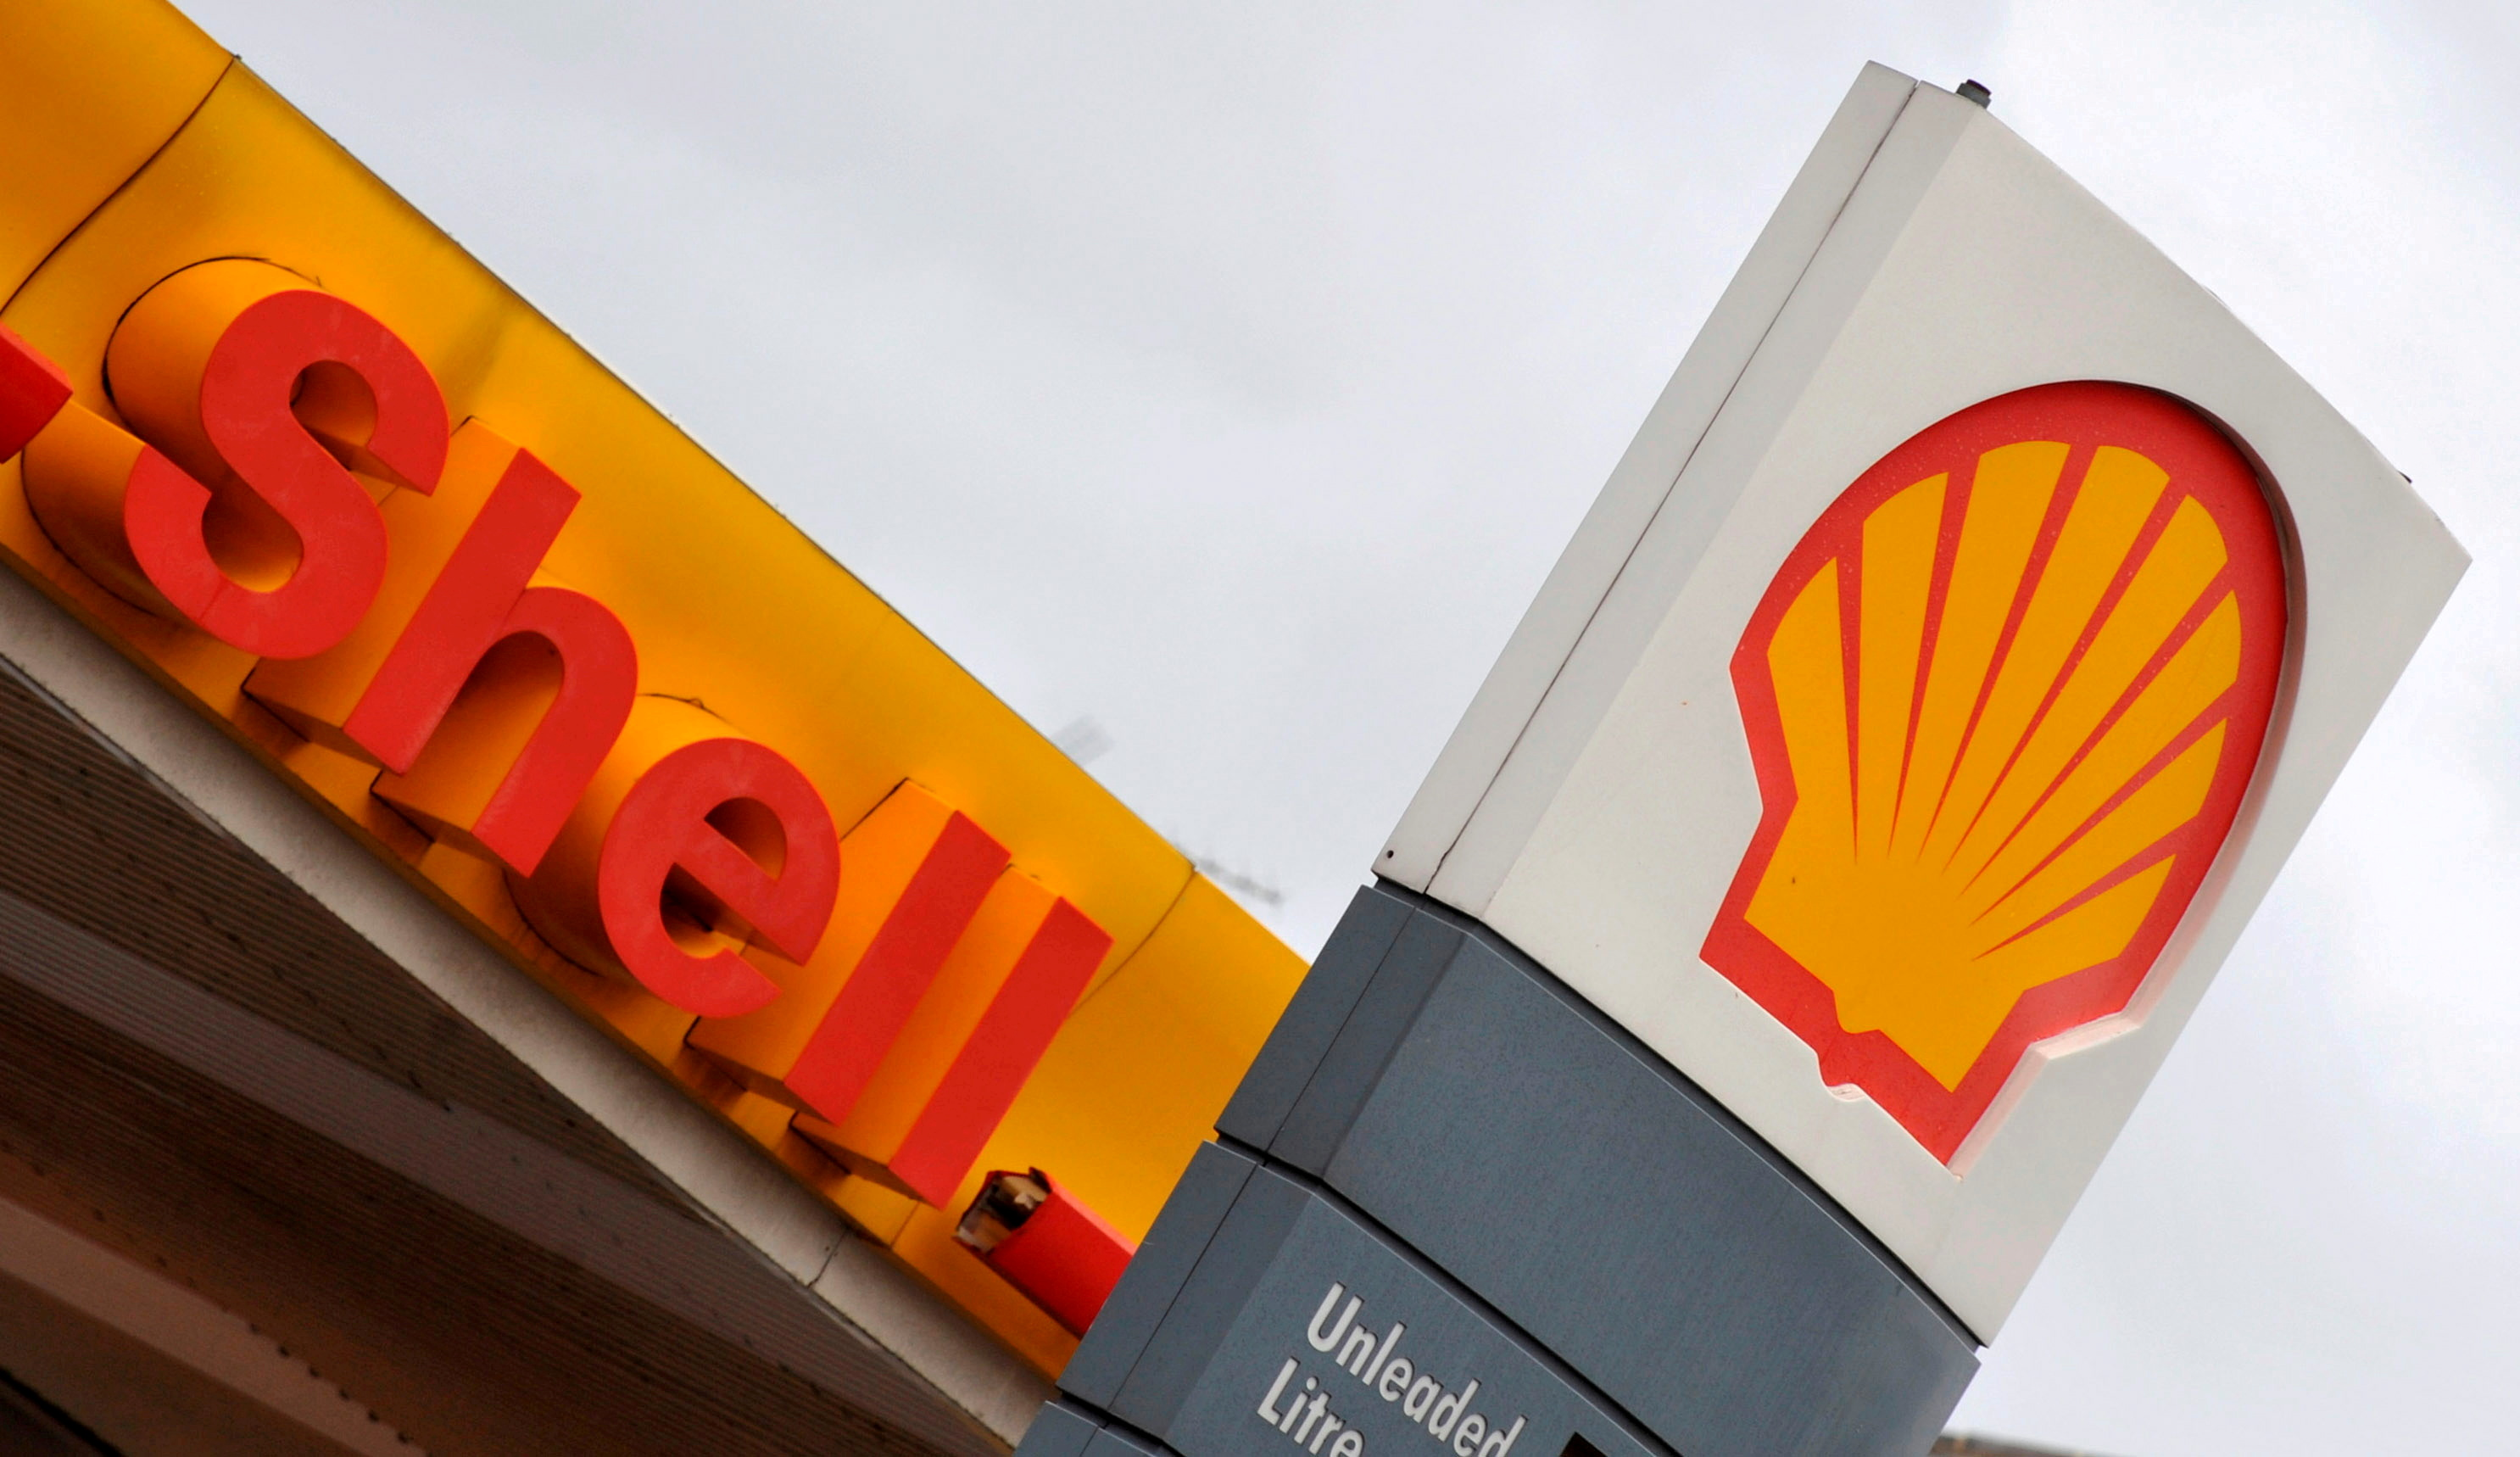 The Royal Dutch Shell logo is seen at a Shell petrol station in London, January 31, 2008. REUTERS/Toby Melville